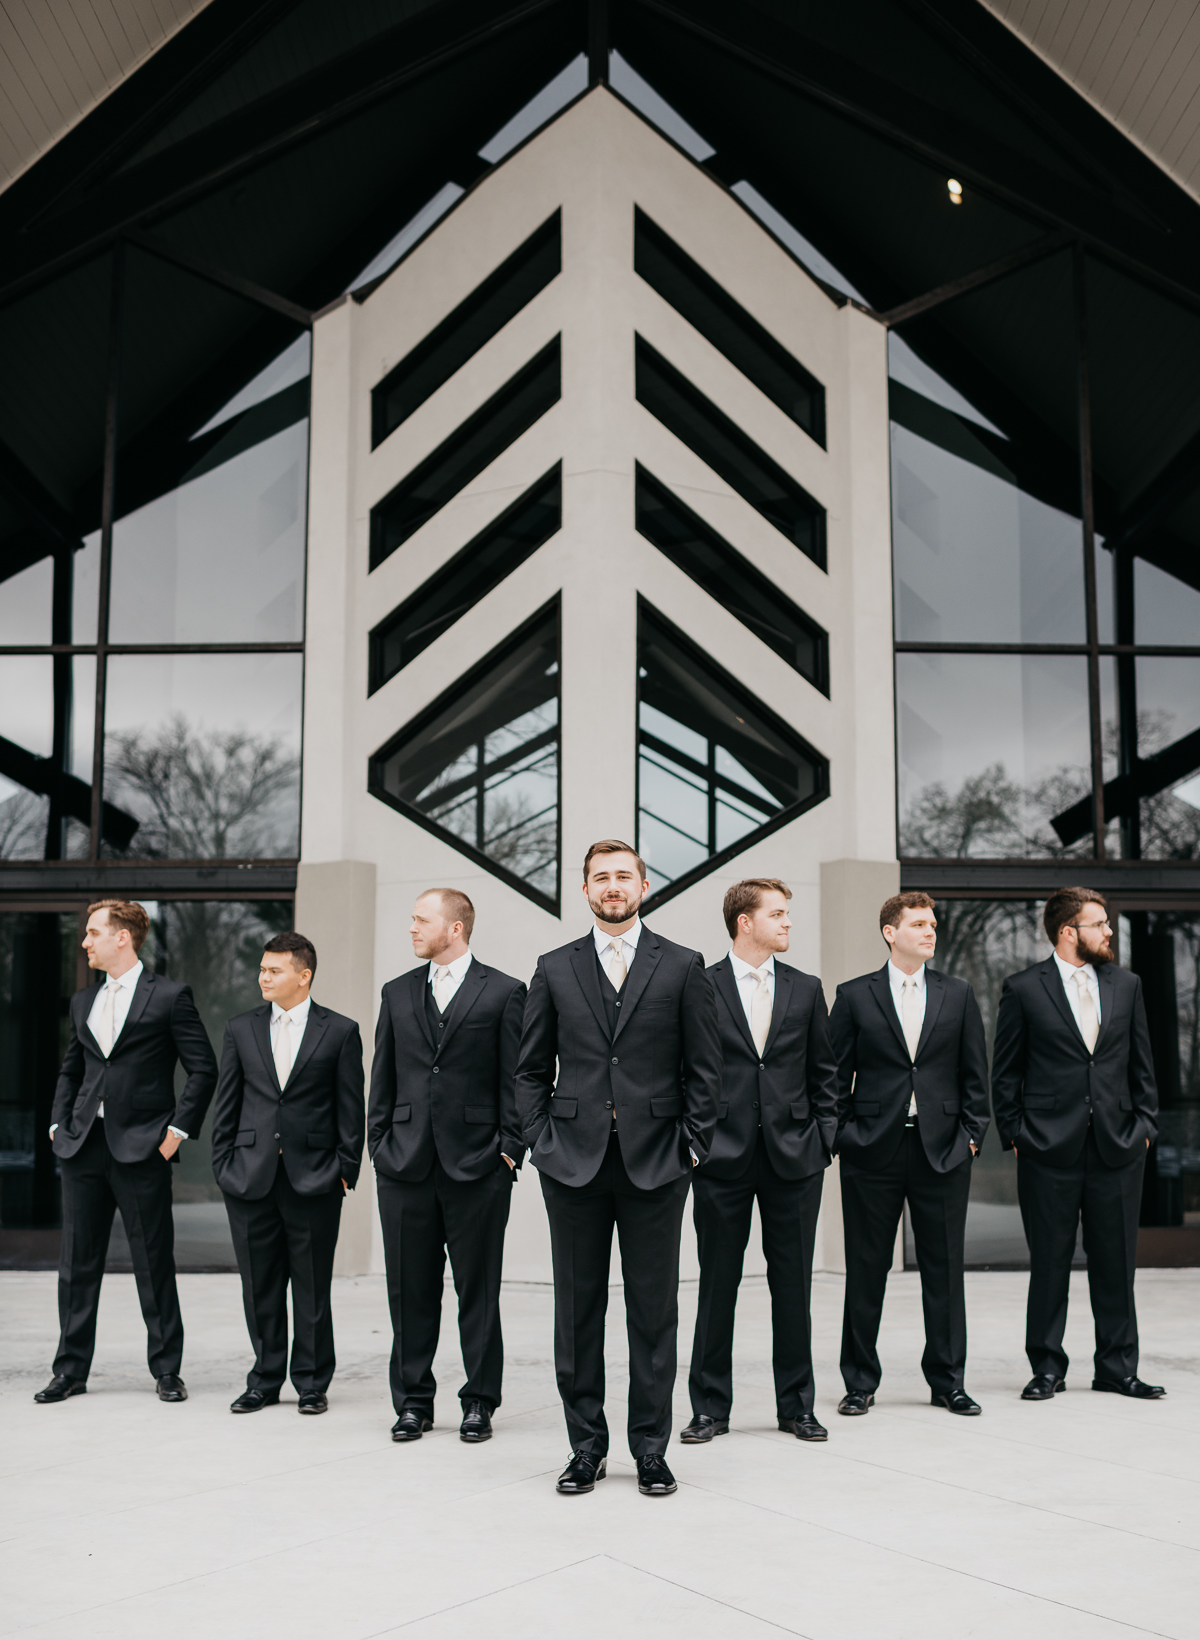 Modern elegant carefree nature wedding at Jennings Trace wedding venue in Conroe Texas camera shi photography groomsmen